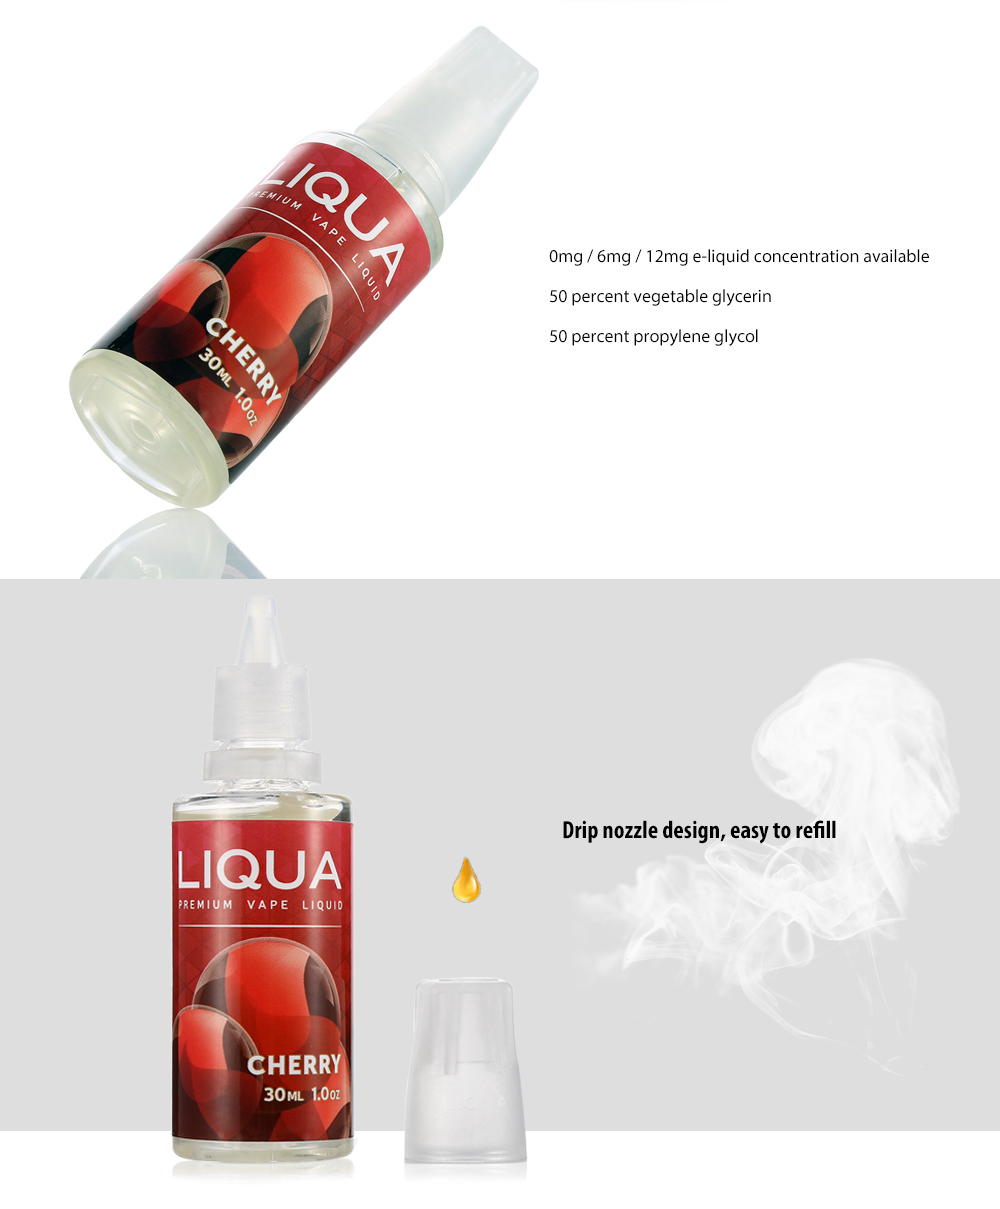 LIQUA Liqua C Series Cherry E-Liquid for E Cigarette